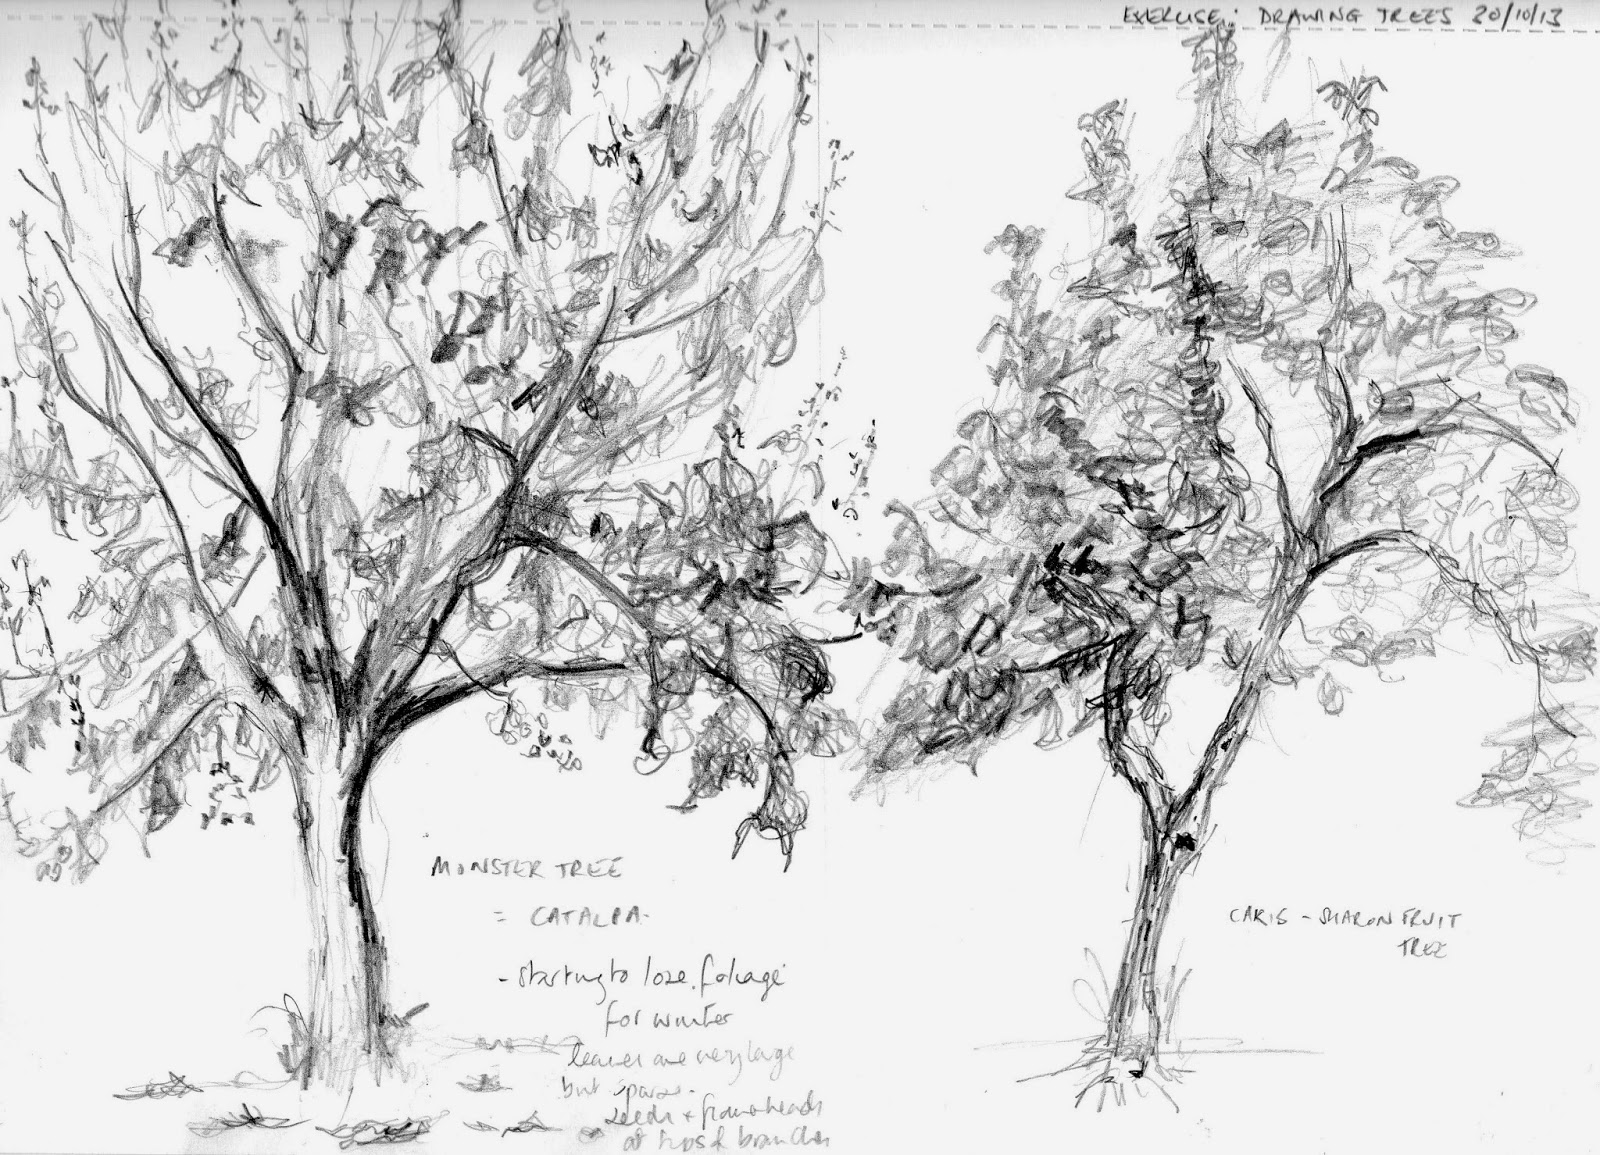 aylish u0026 39 s oca learning log  project drawing trees